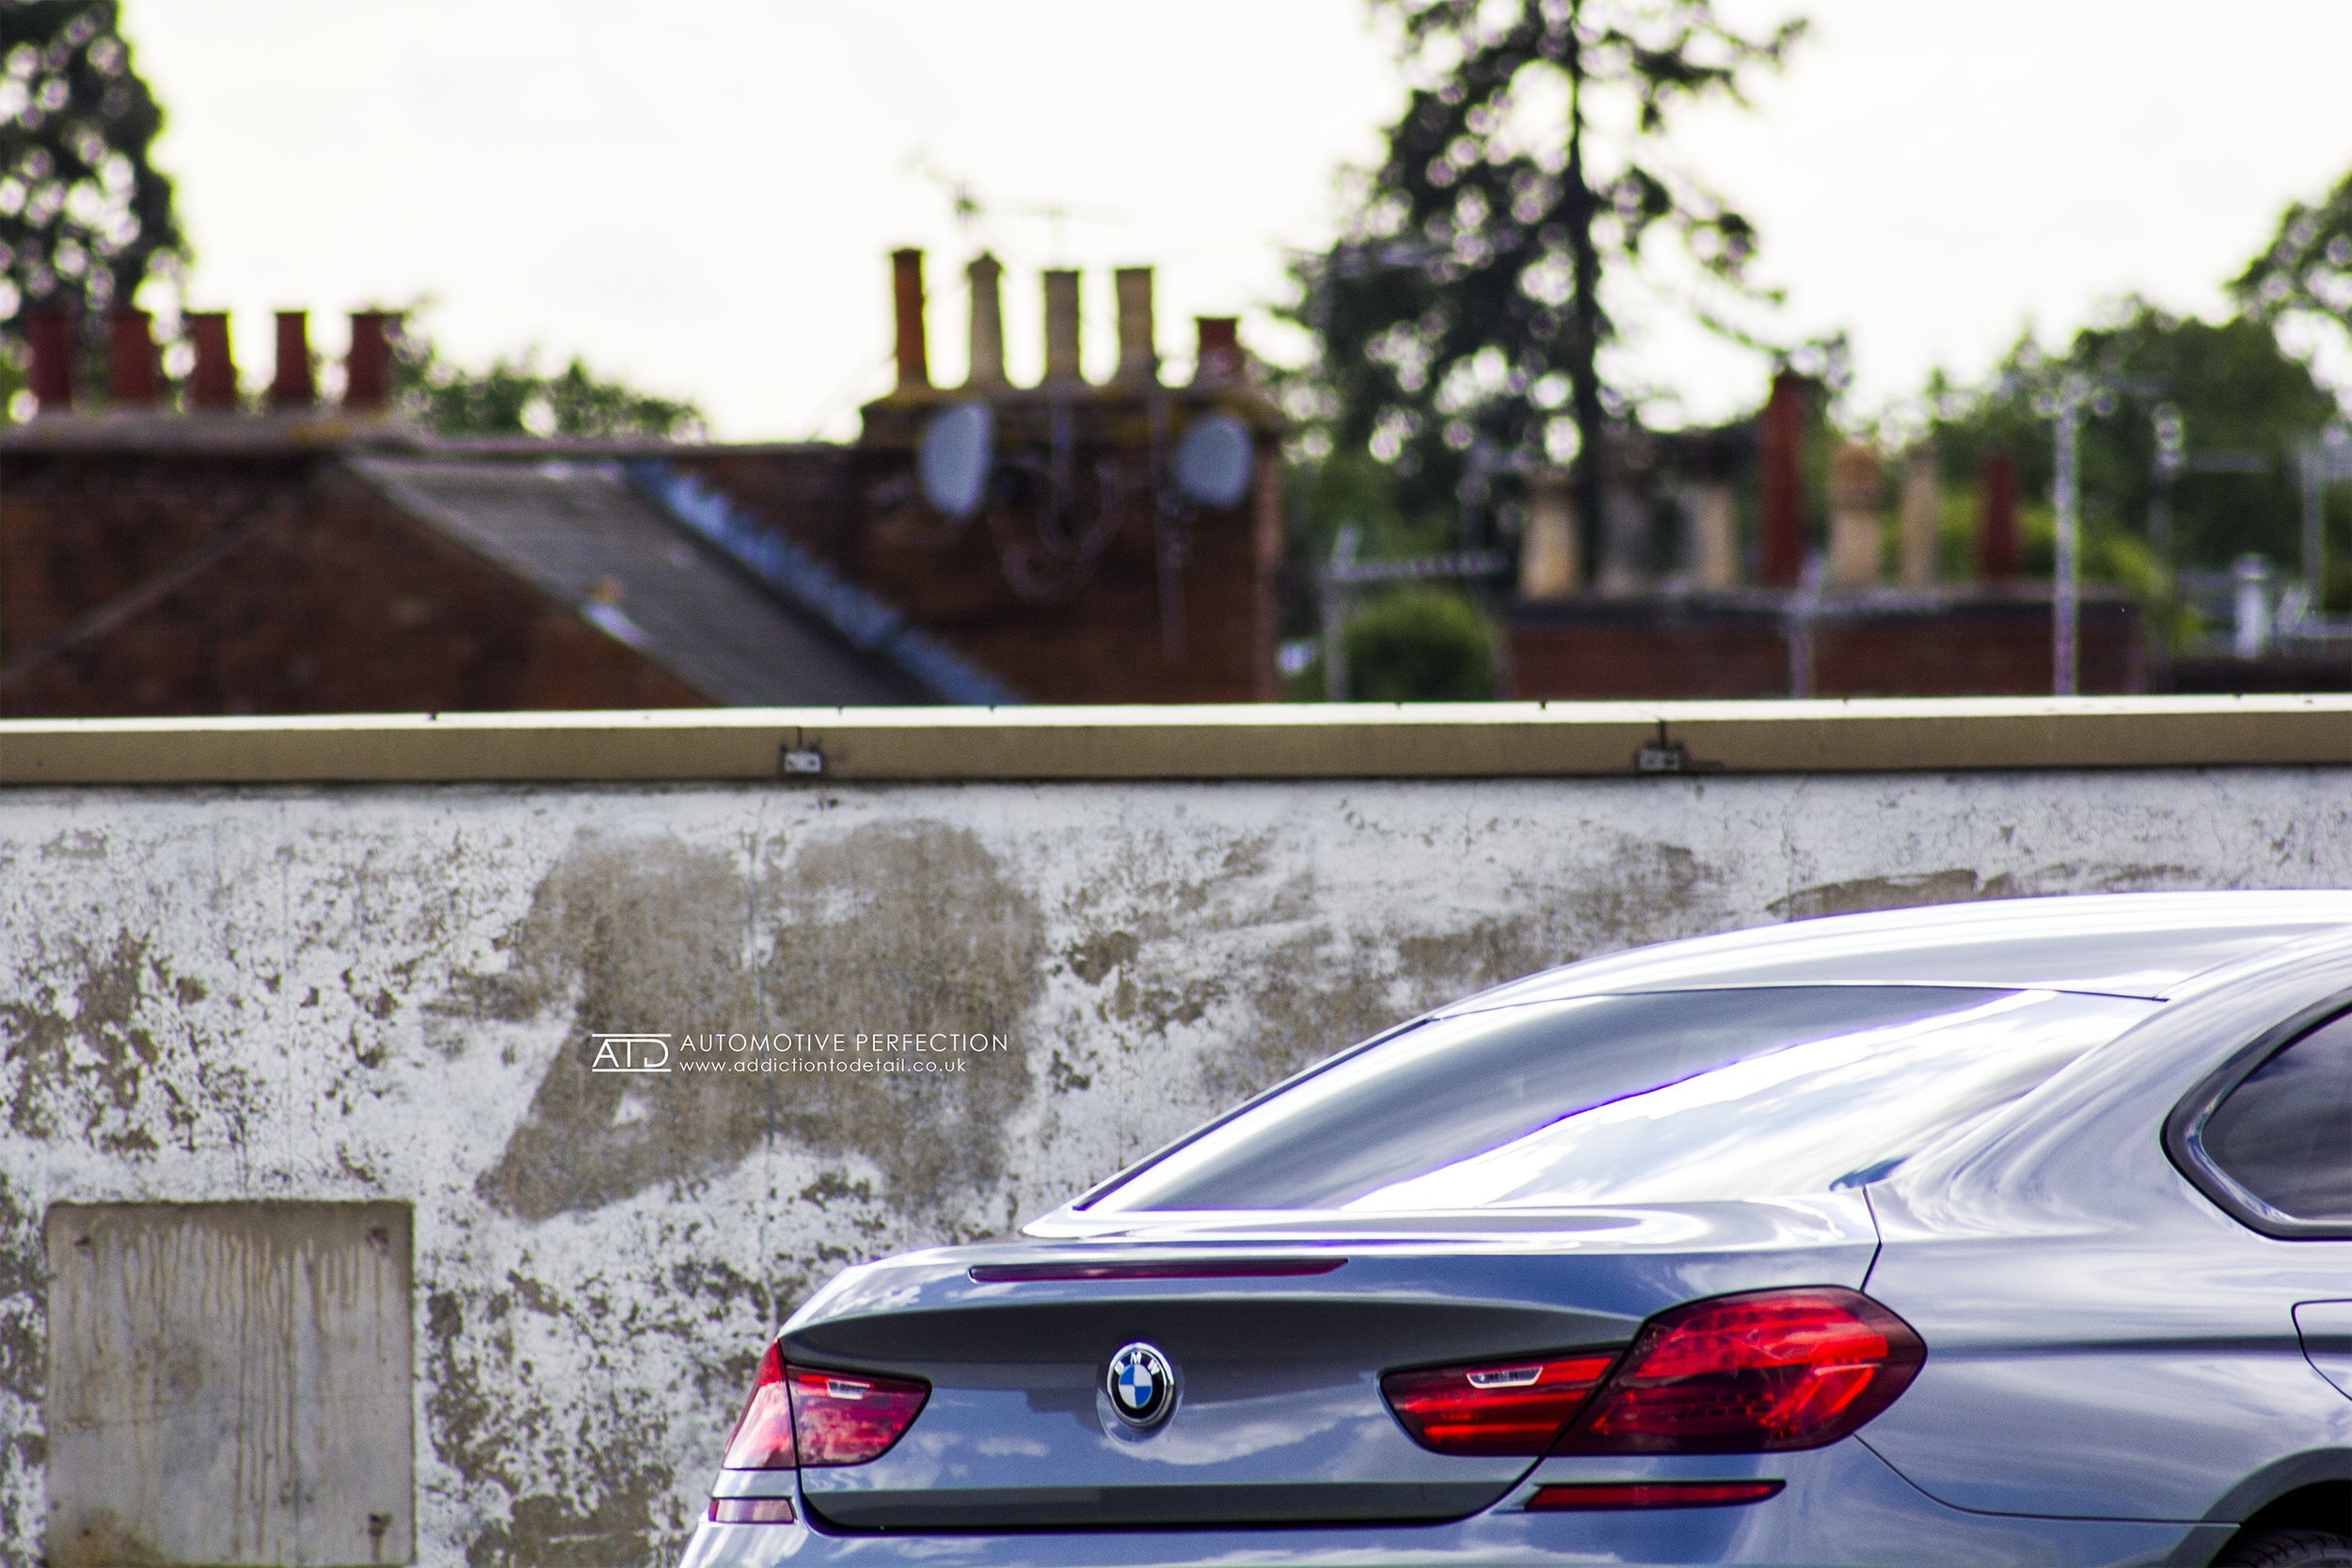 640D_Coupe_Photoshoot__0013_Image_021.jpg